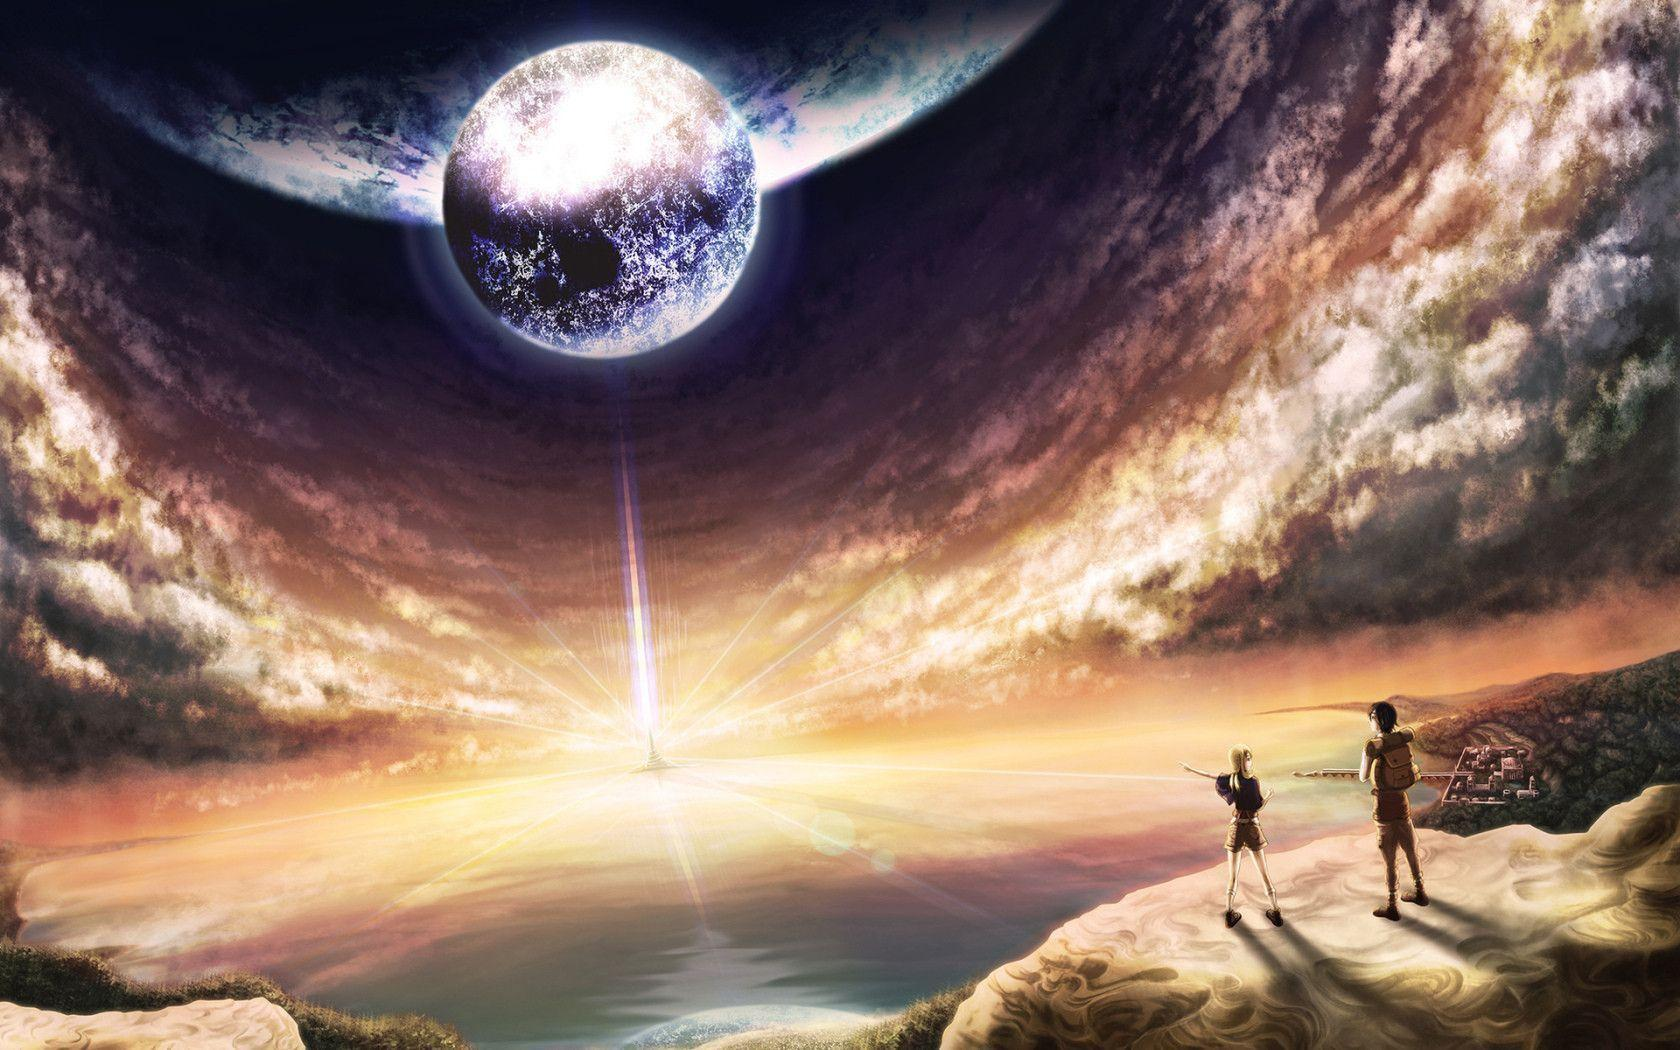 Fantasy World Anime Widescreen Wallpaper Wide